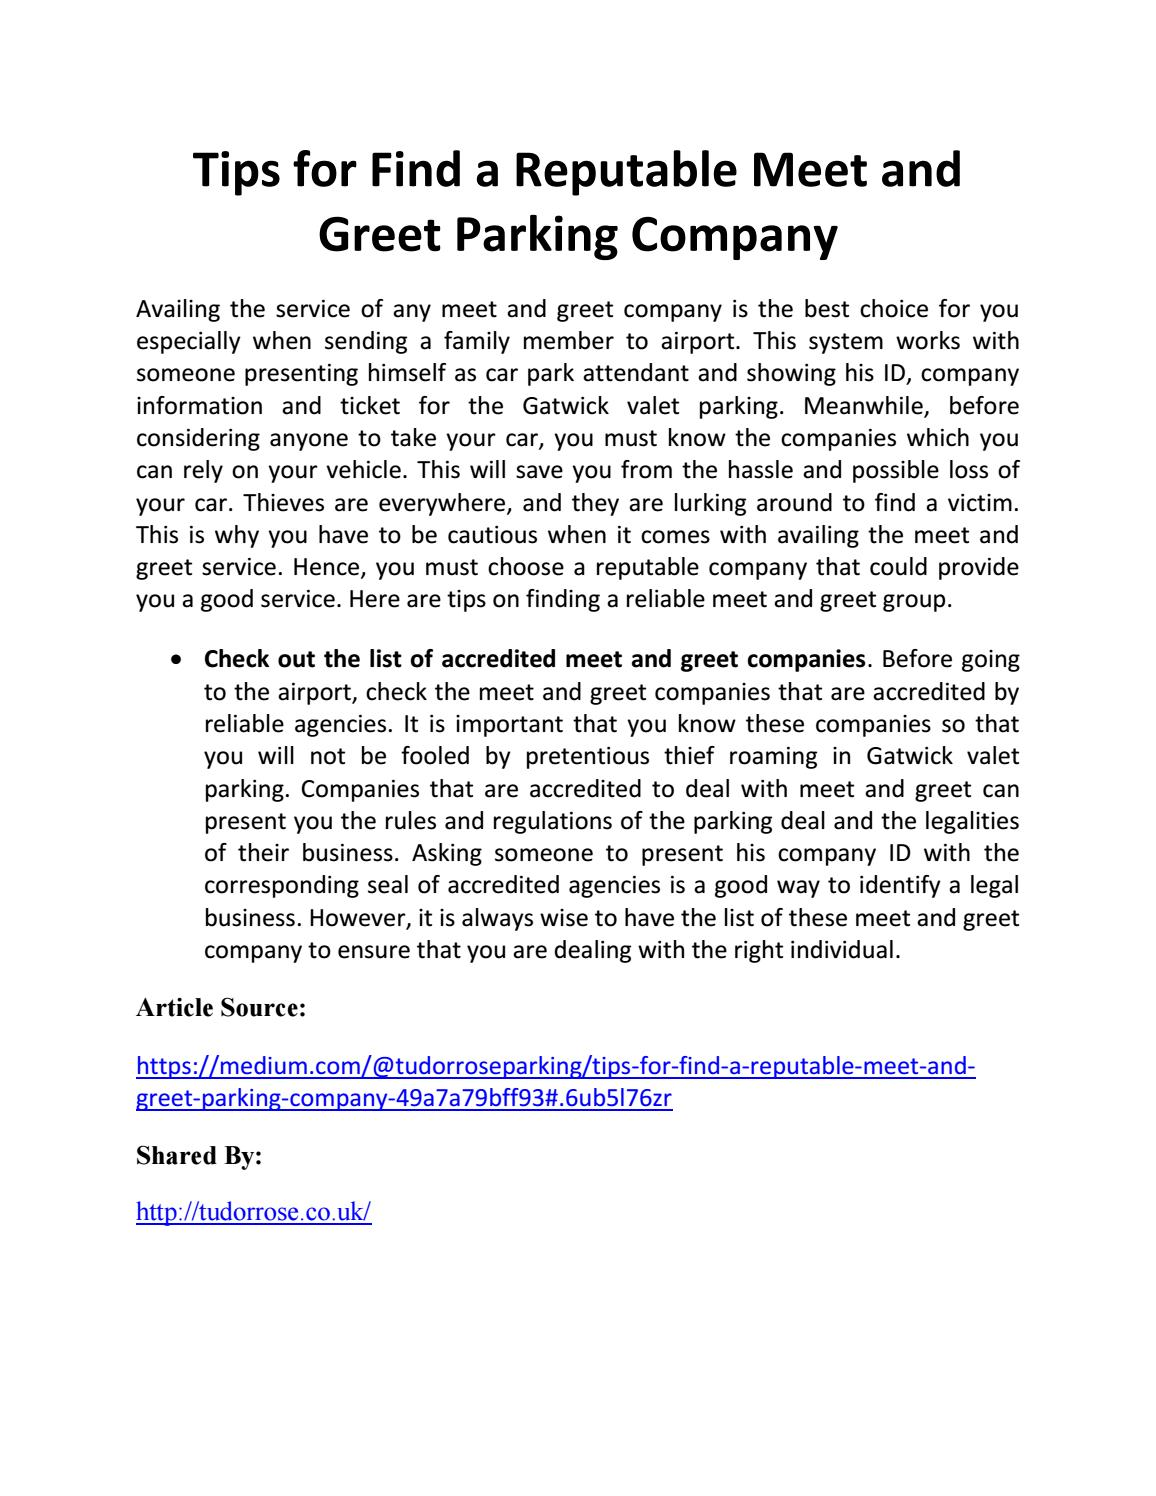 Tips For Find A Reputable Meet And Greet Parking Company By Tudor